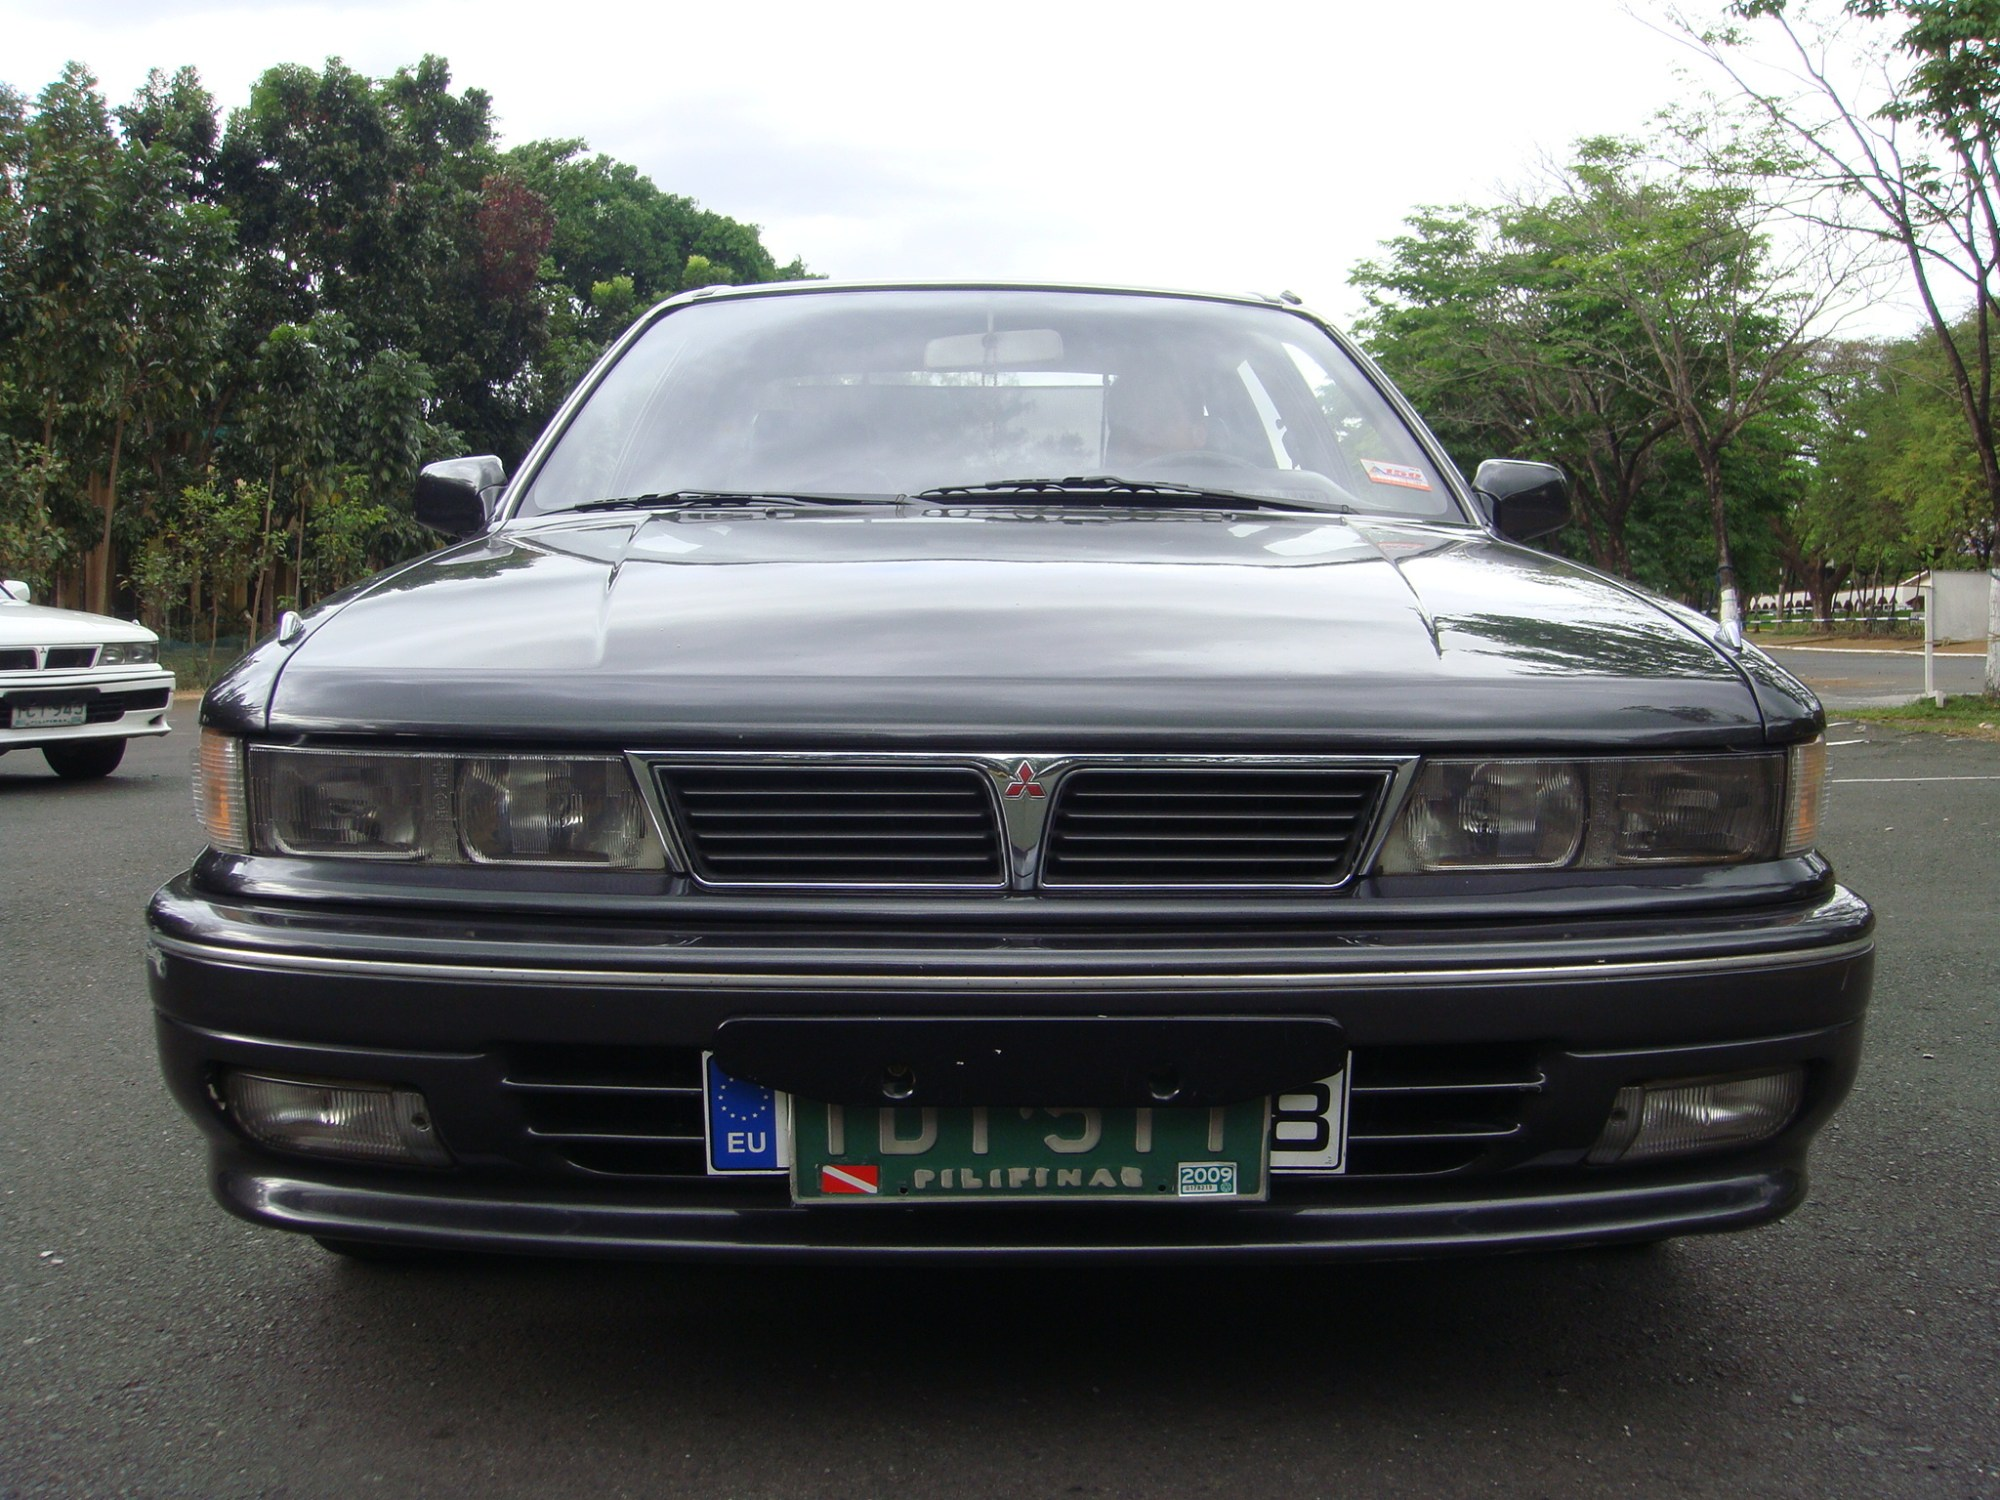 hight resolution of  ds007 1992 mitsubishi galant 33294770001 original